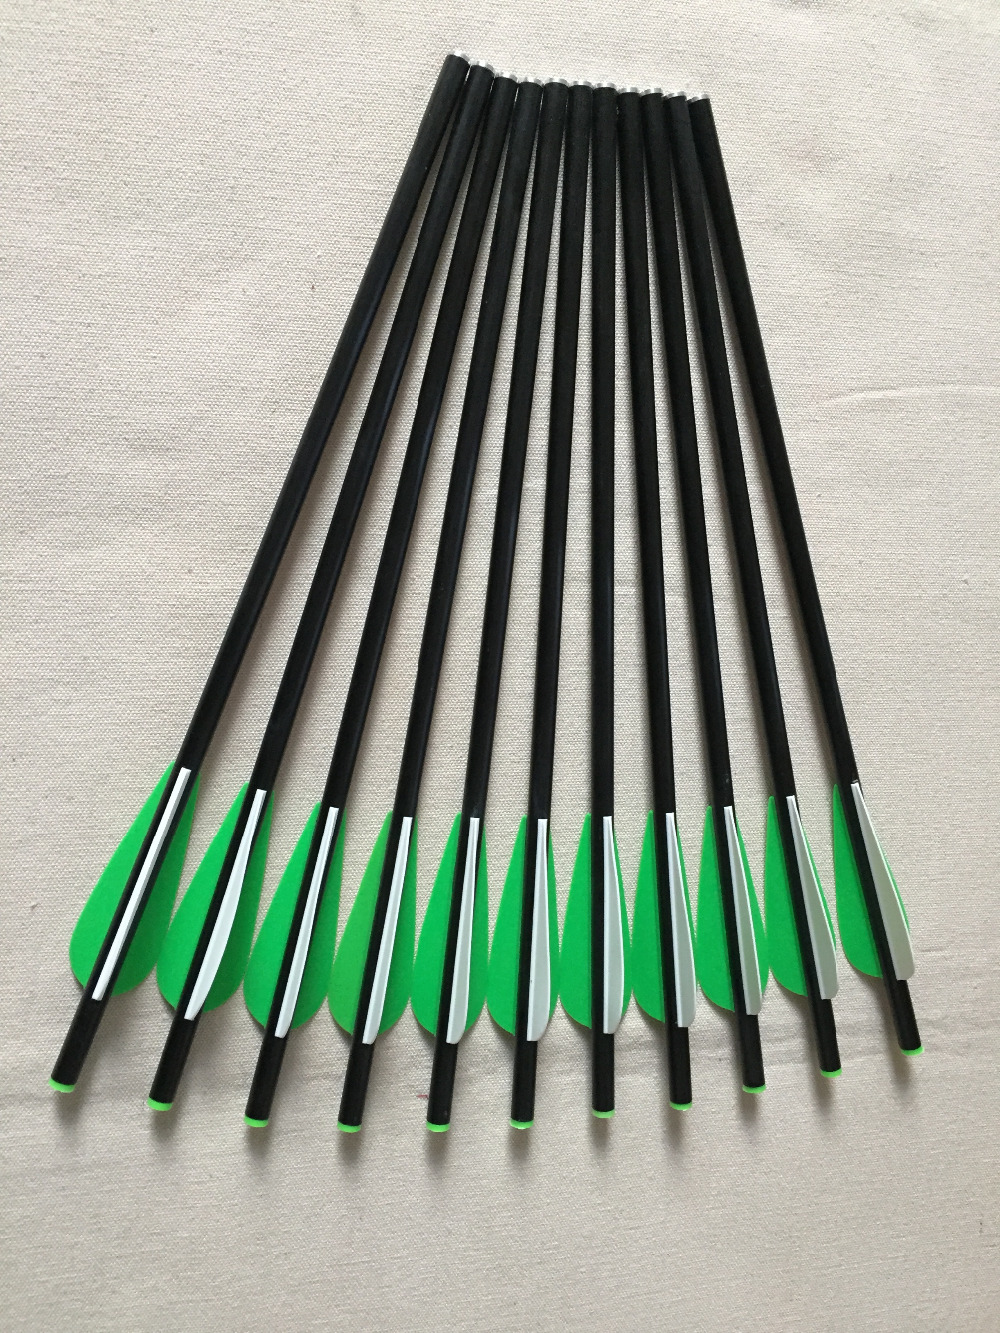 12pcs 13 Fiberglass Arrow Crossbow Arrow Bolts with 3 Plastic Vane Replaceable arrow tip for Outdoor